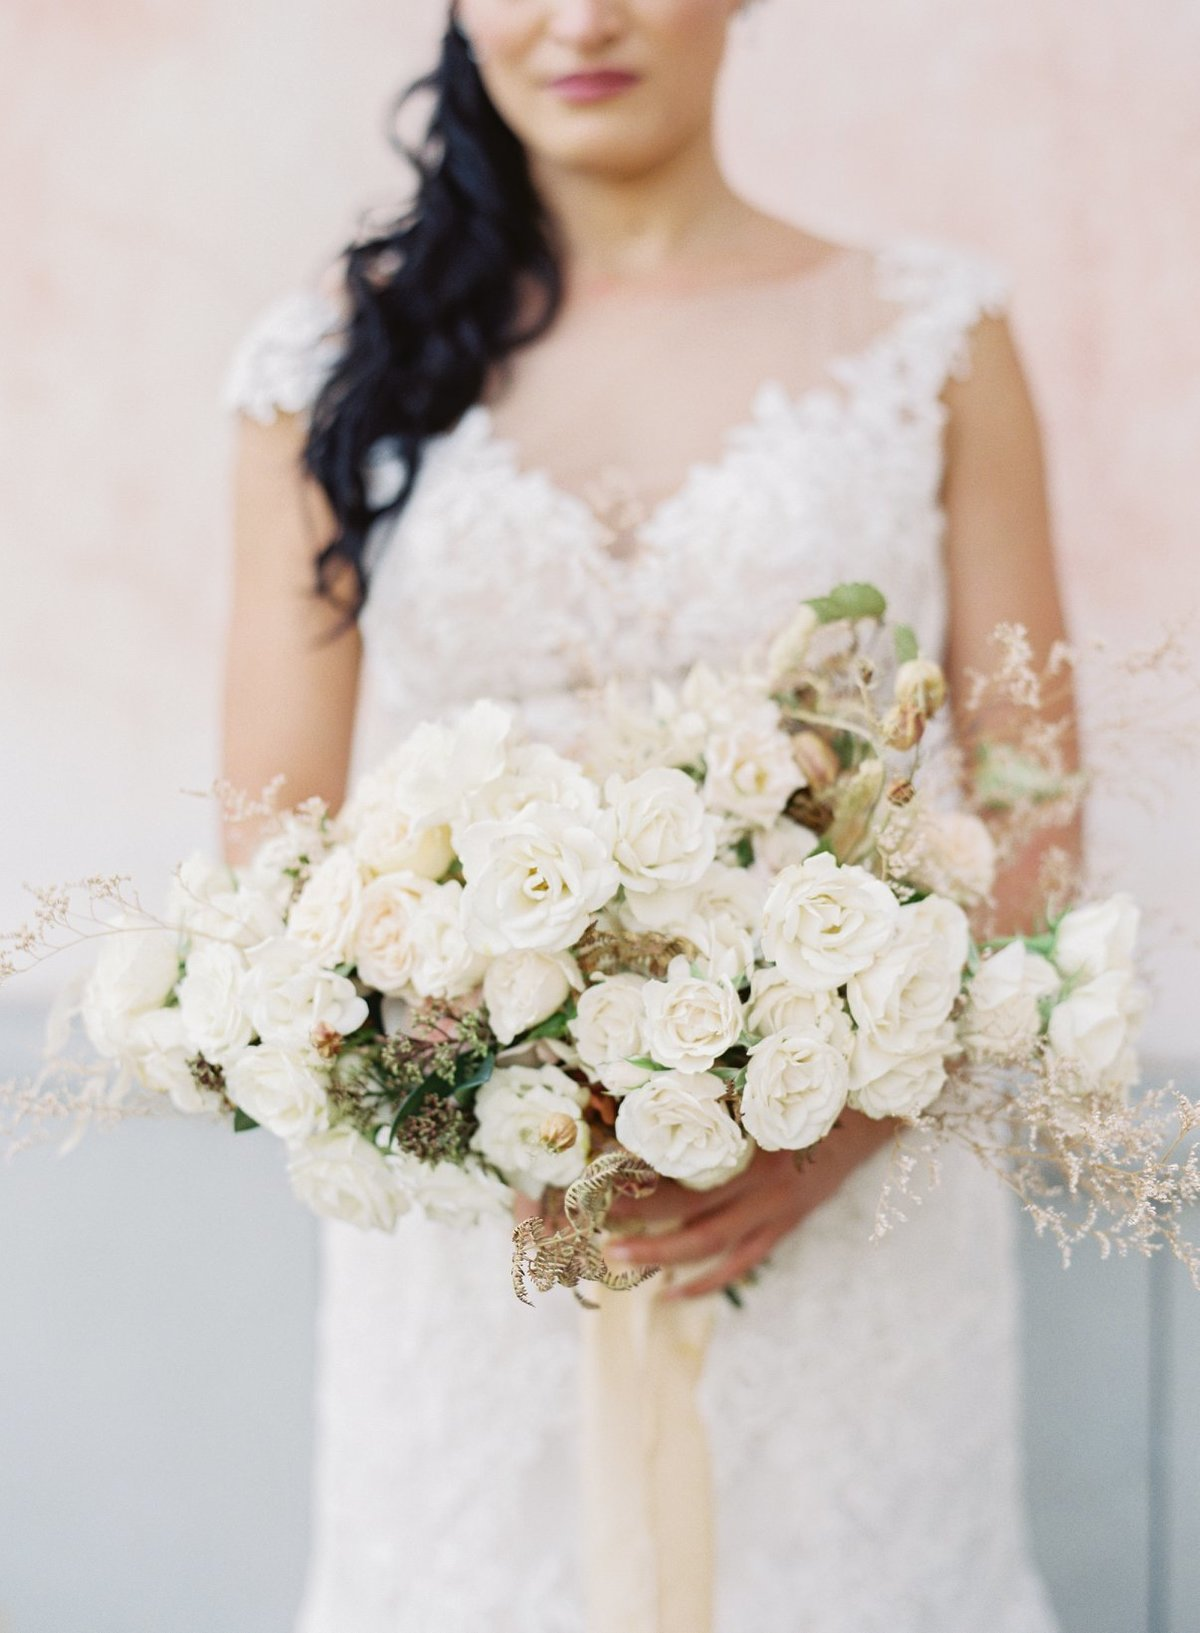 Morilee Bridal Gown and Soft White Bridal Bouquet in Tuscany